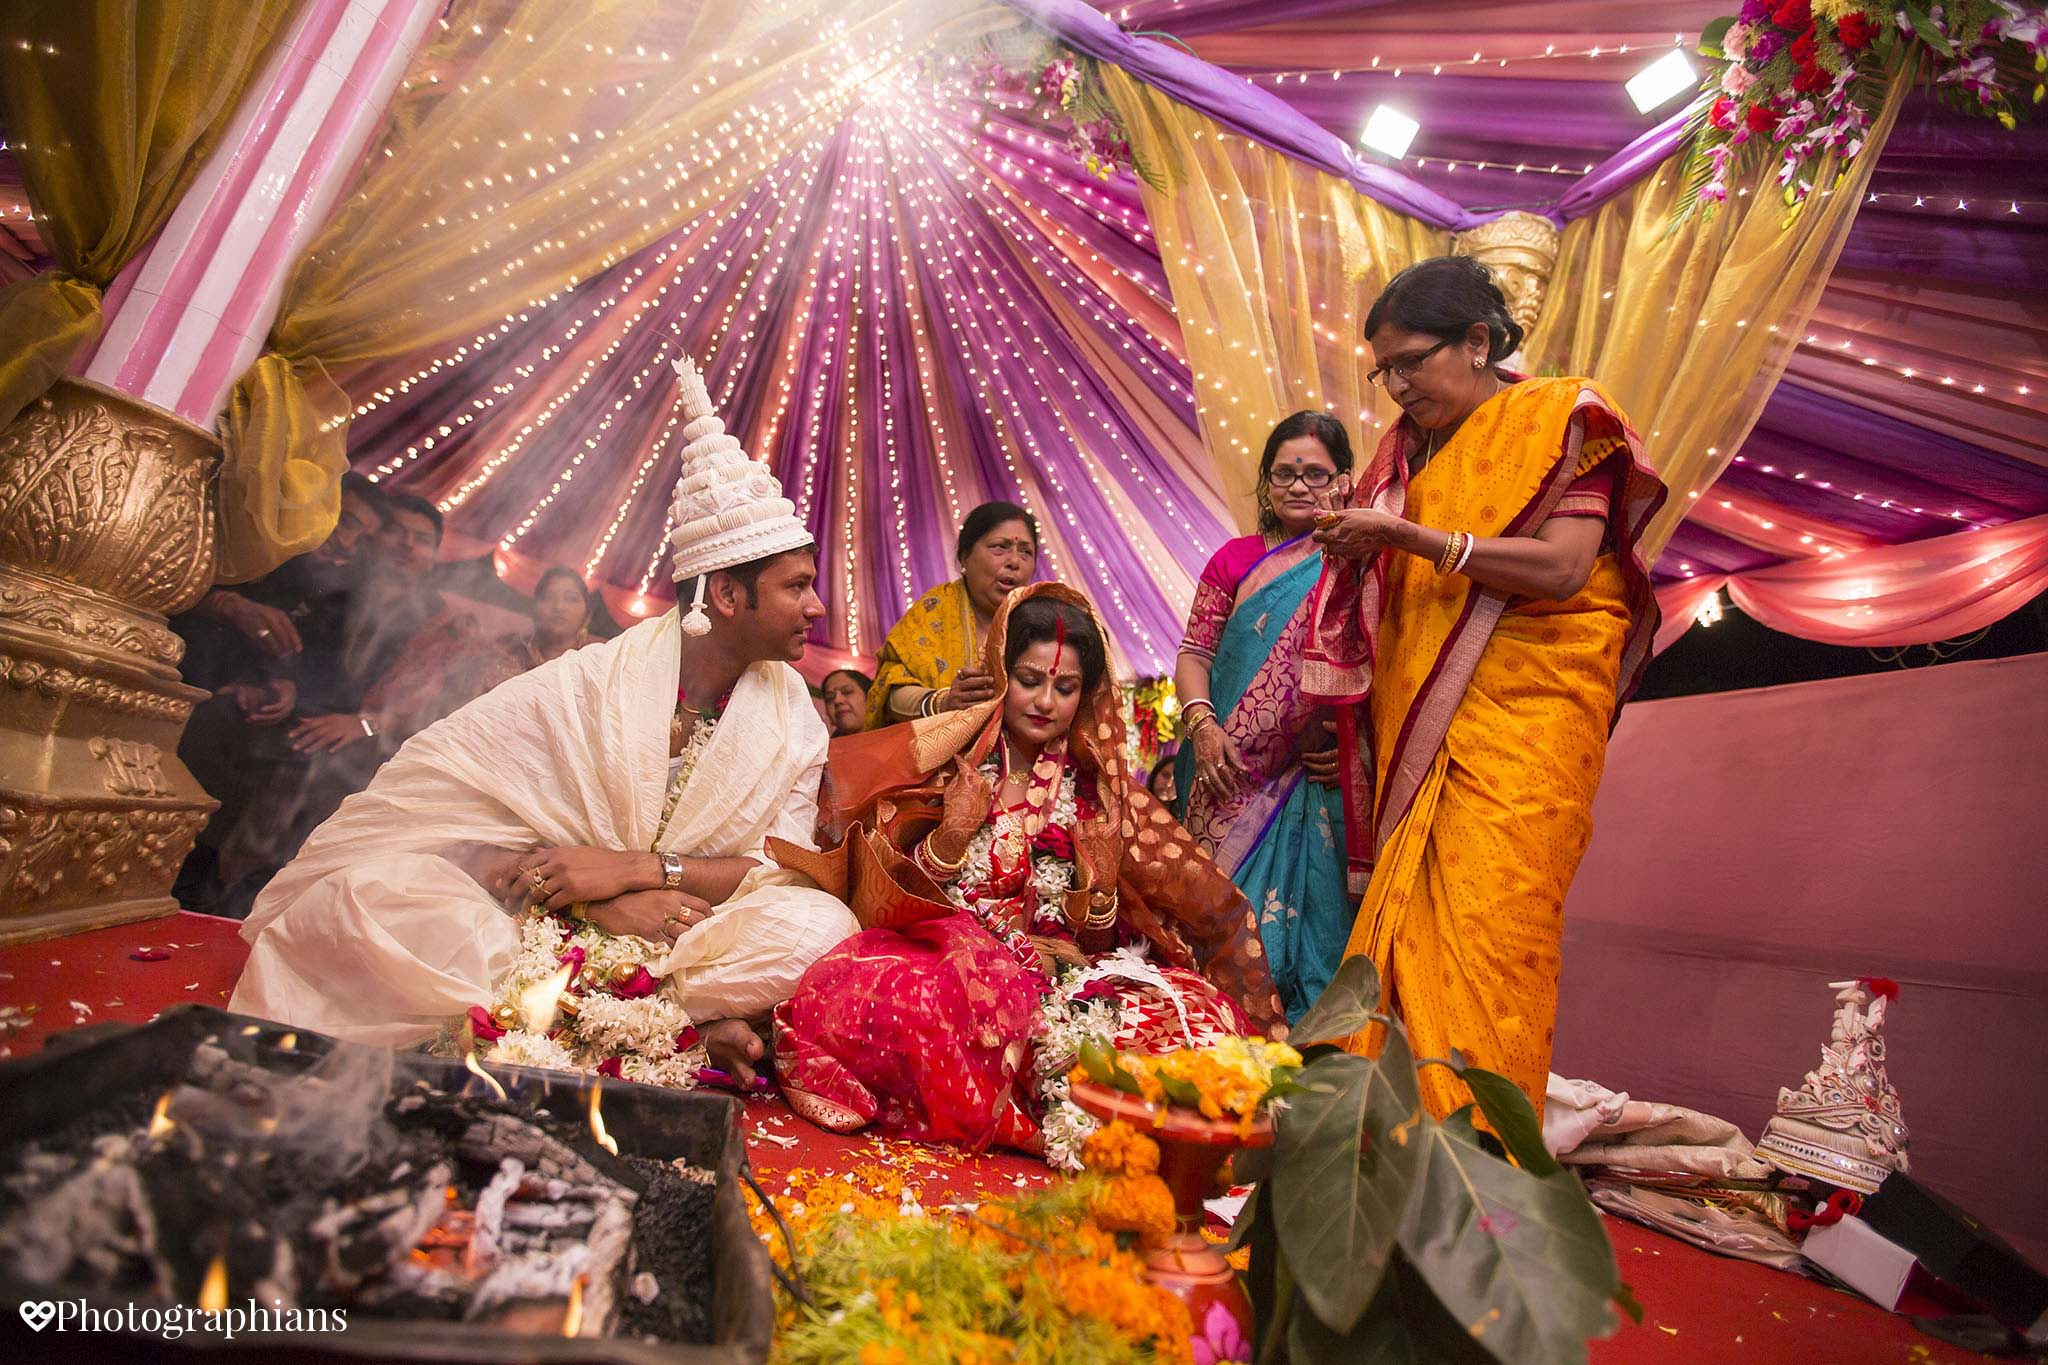 Photographians_Indian_Destination_Wedding_238